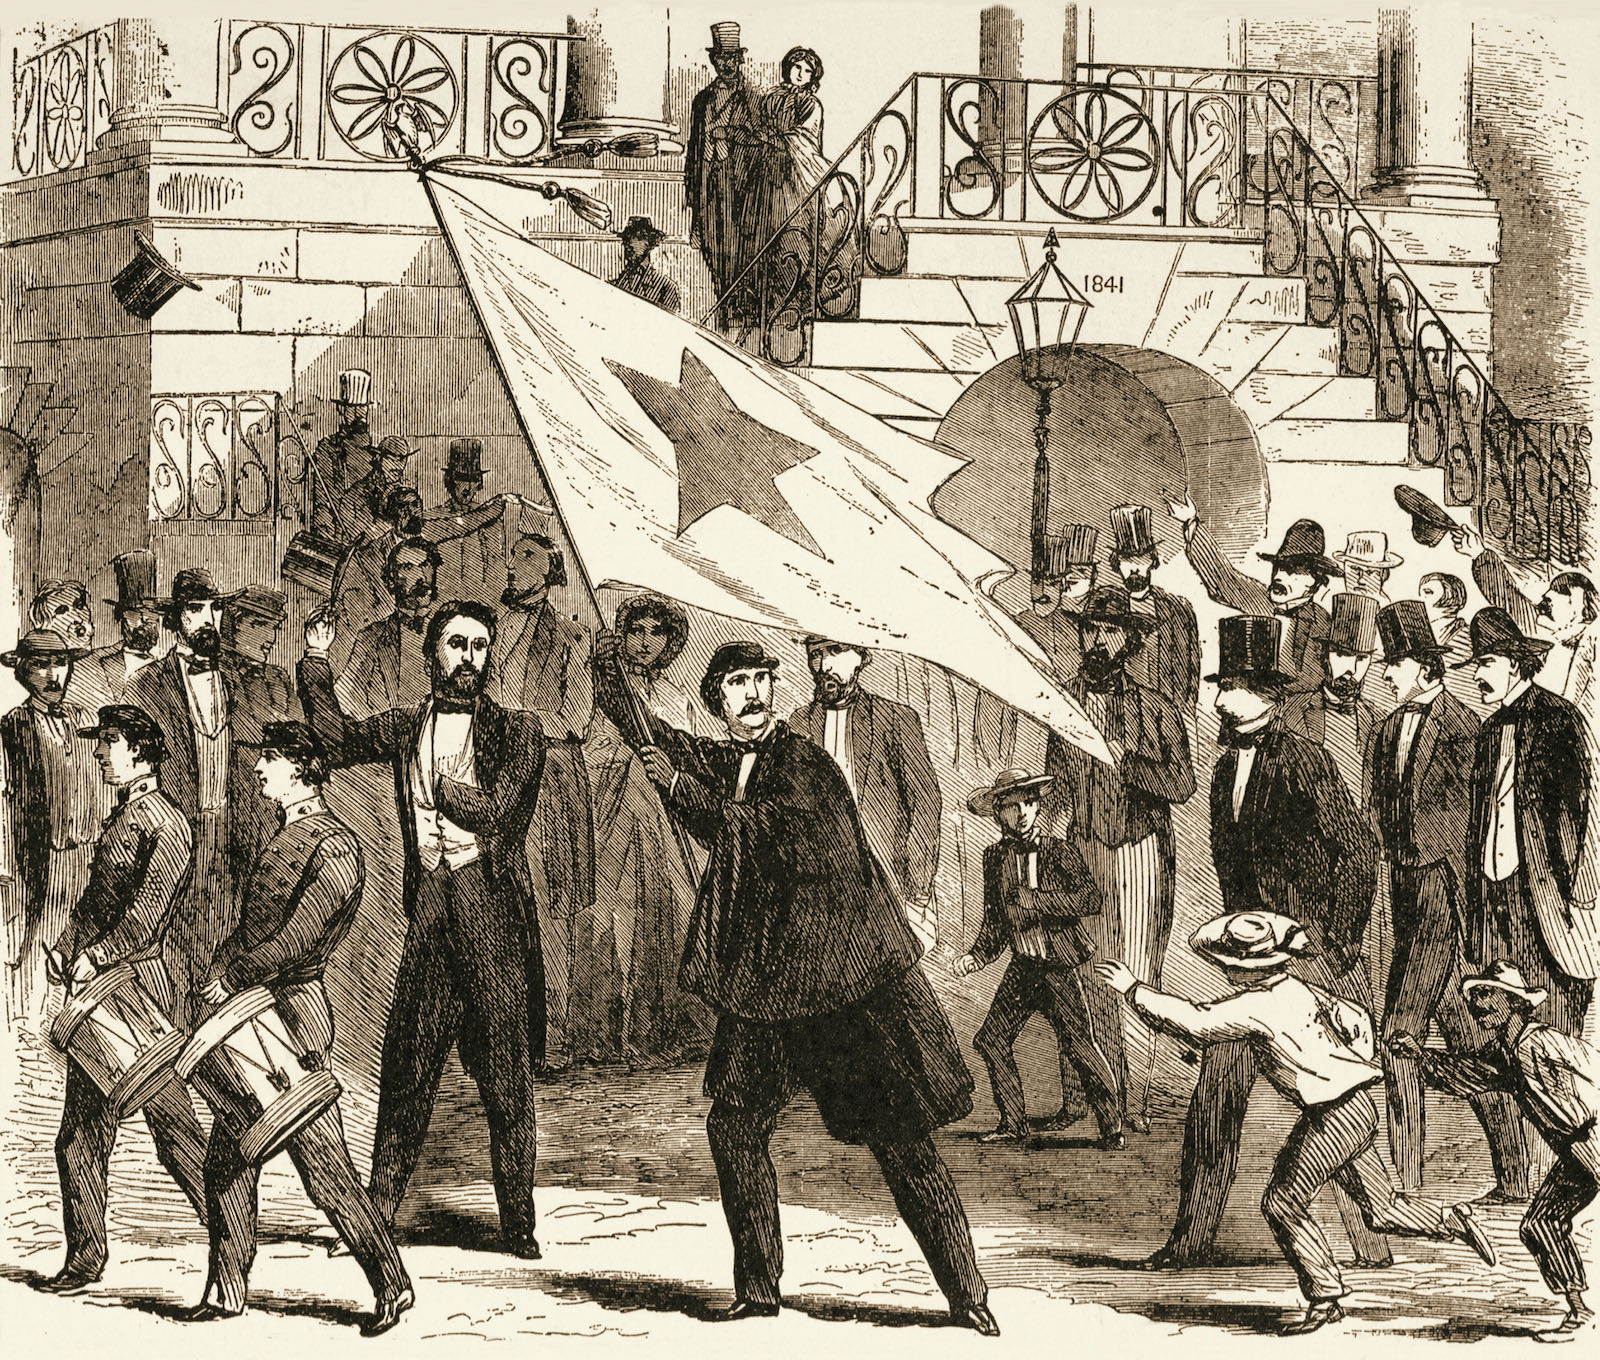 Secessionists marching in South Carolina